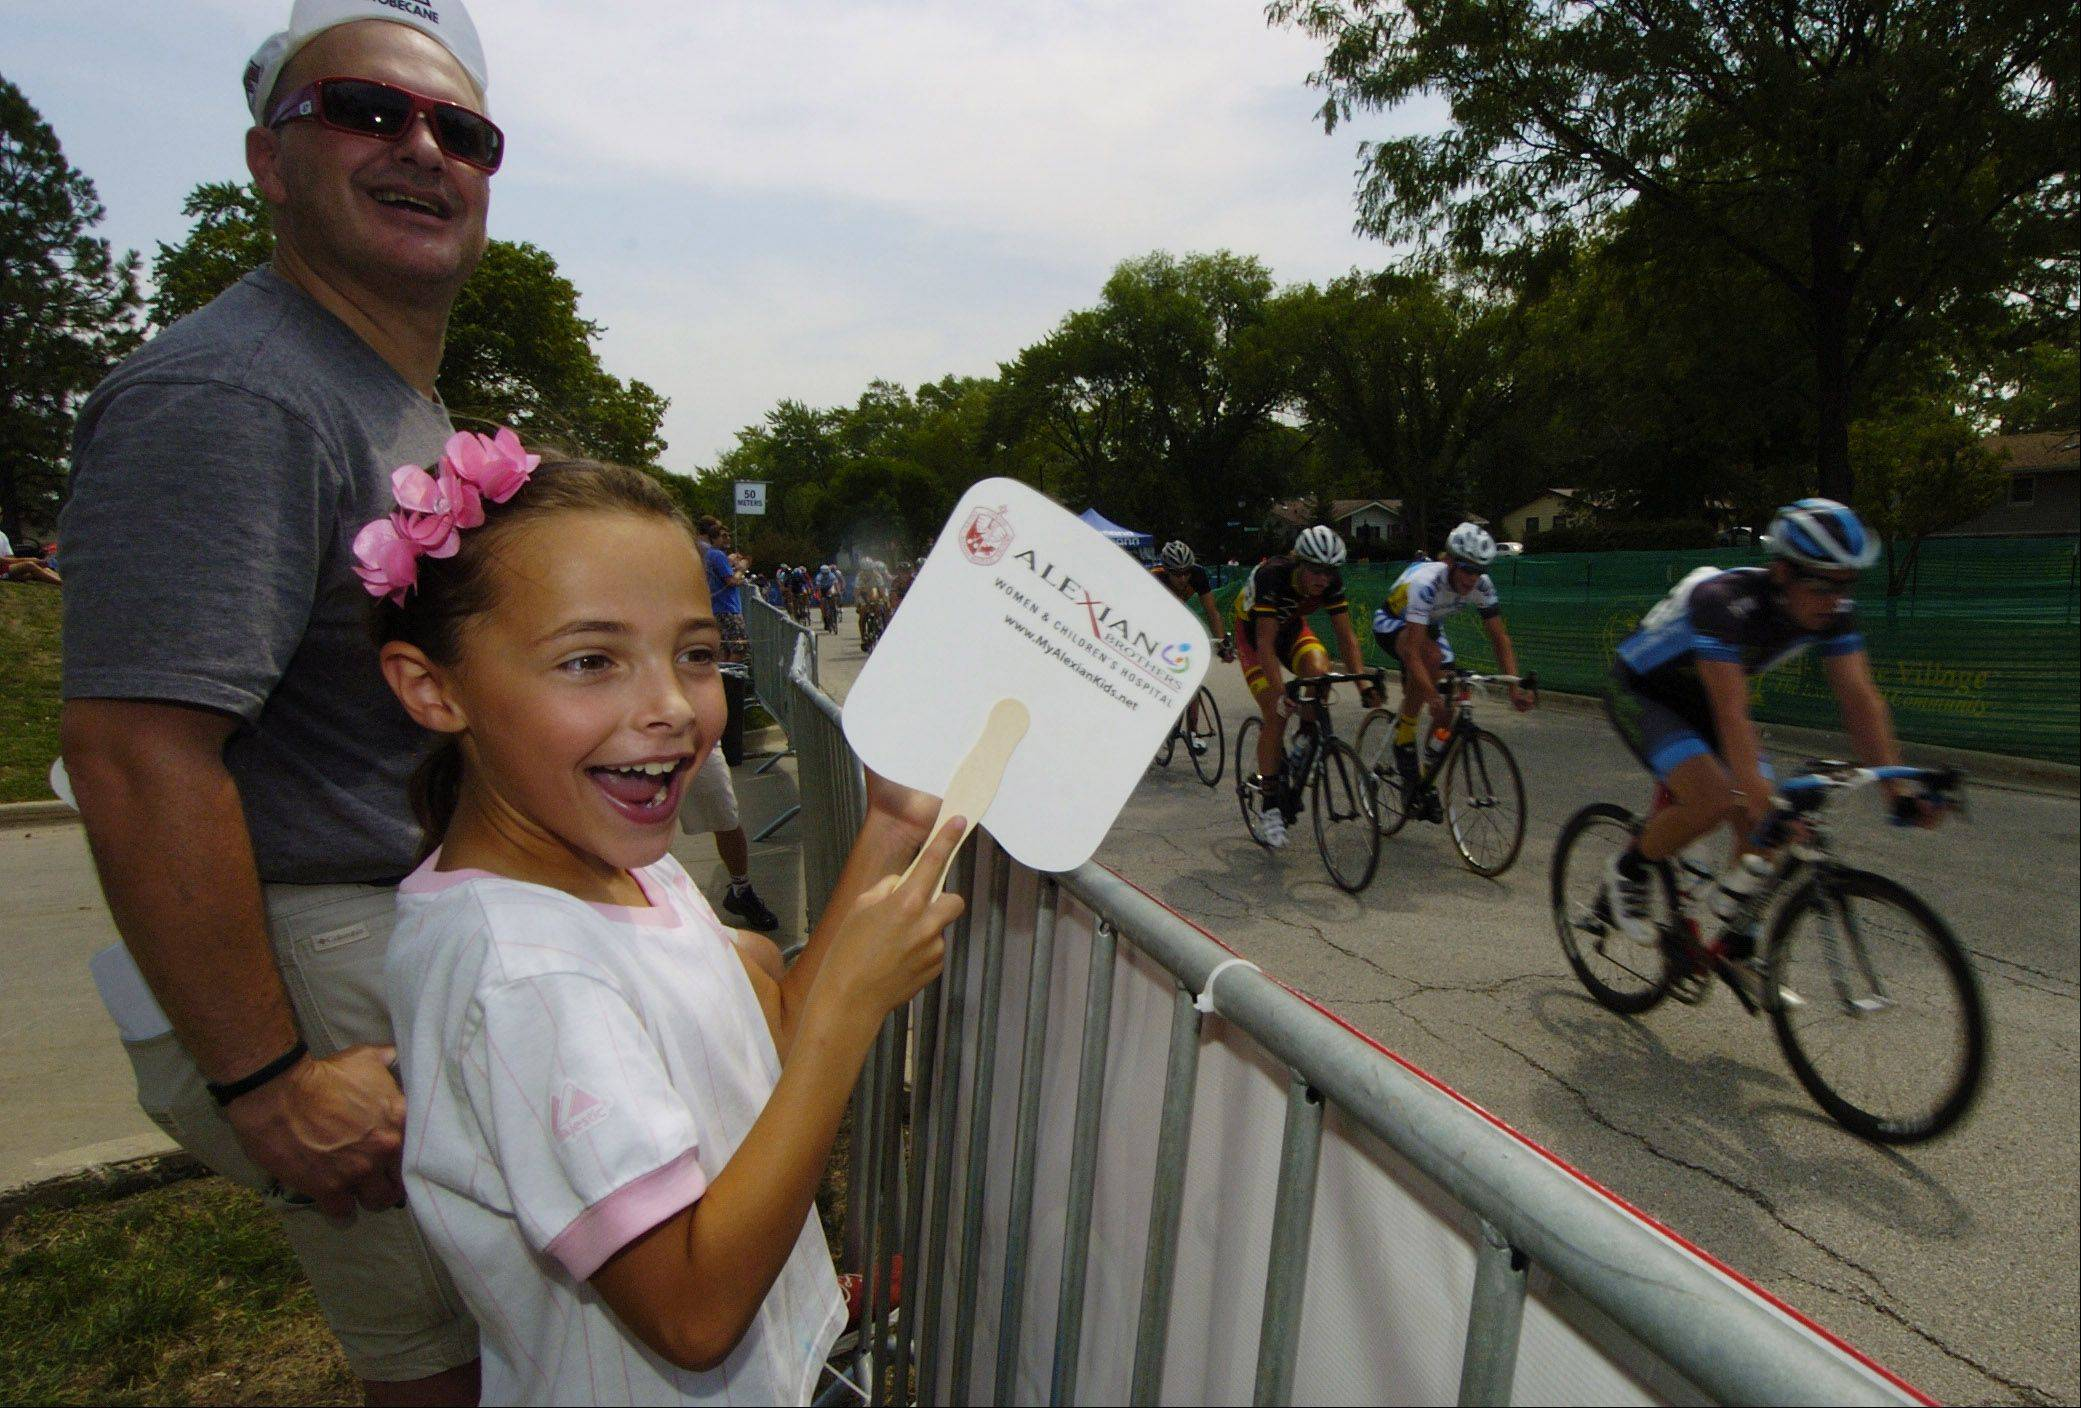 Madeline Galliano, 8, of Mount Prospect and her dad, Francisco, cheer on riders during the Tour of Elk Grove Saturday.